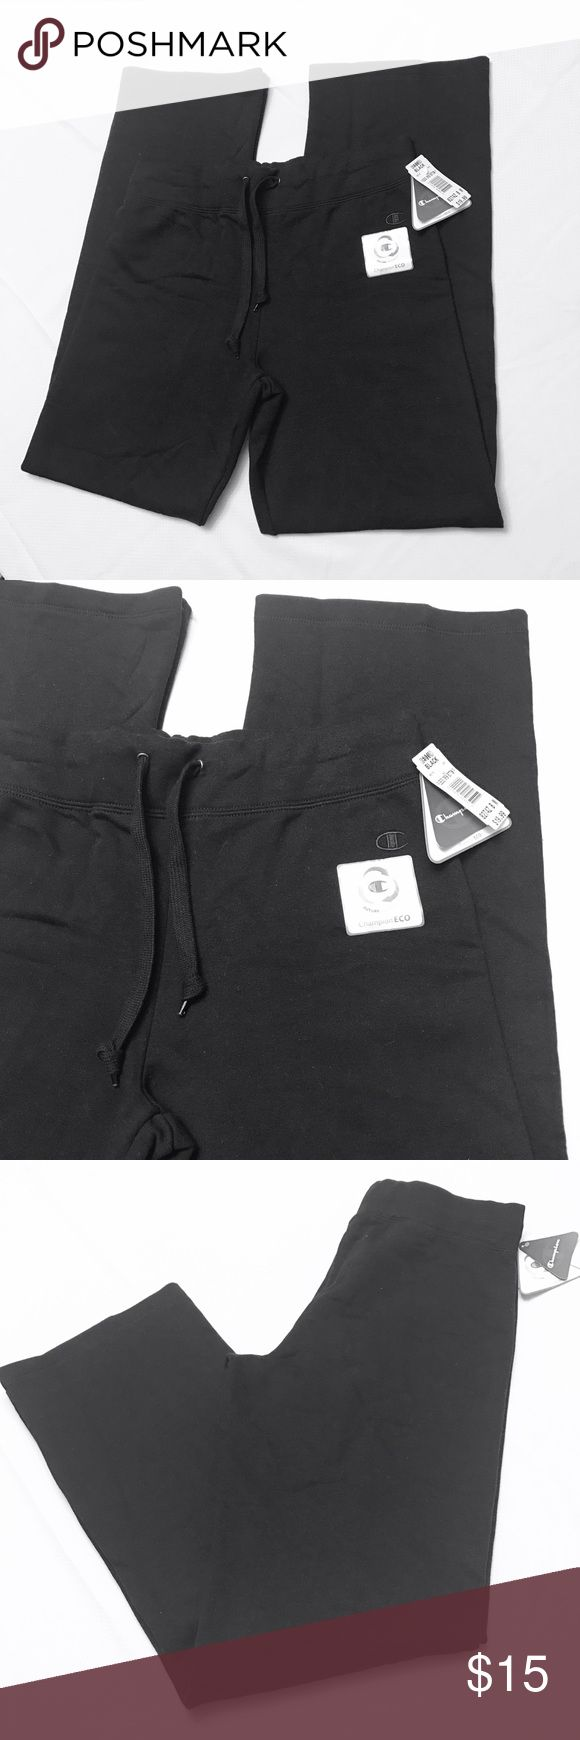 Womens Champion Eco Fleece Open Bottom Sweatpants This is a nice brand new heavyweight black pair of womens Champion Eco Fleece Open Bottom Sweatpants. These drawstring sweats are cotton & polyester, & very soft. They are good for working out or just lounging about! Champion Pants Track Pants & Joggers